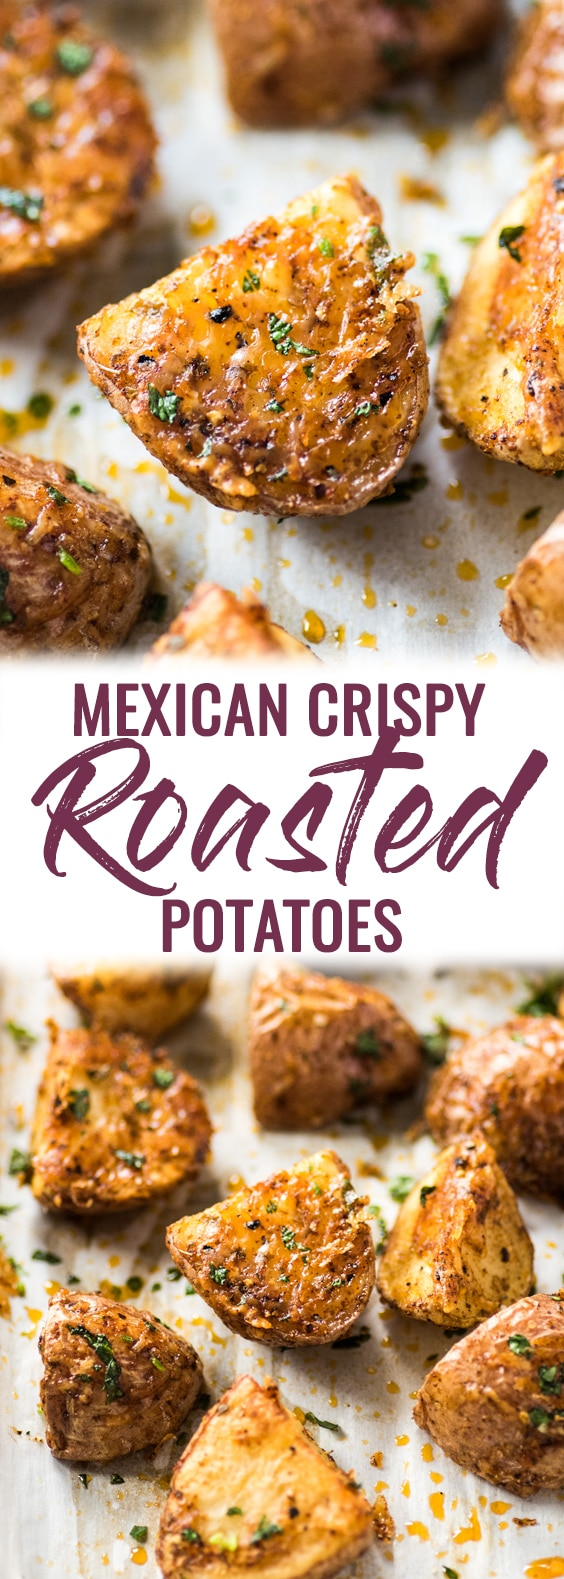 These Mexican Crispy Roasted Potatoes seasoned with chili powder, garlic, sea salt and Parmesan cheese are baked, not fried and are the perfect side to weekday meals. (gluten free, vegetarian)